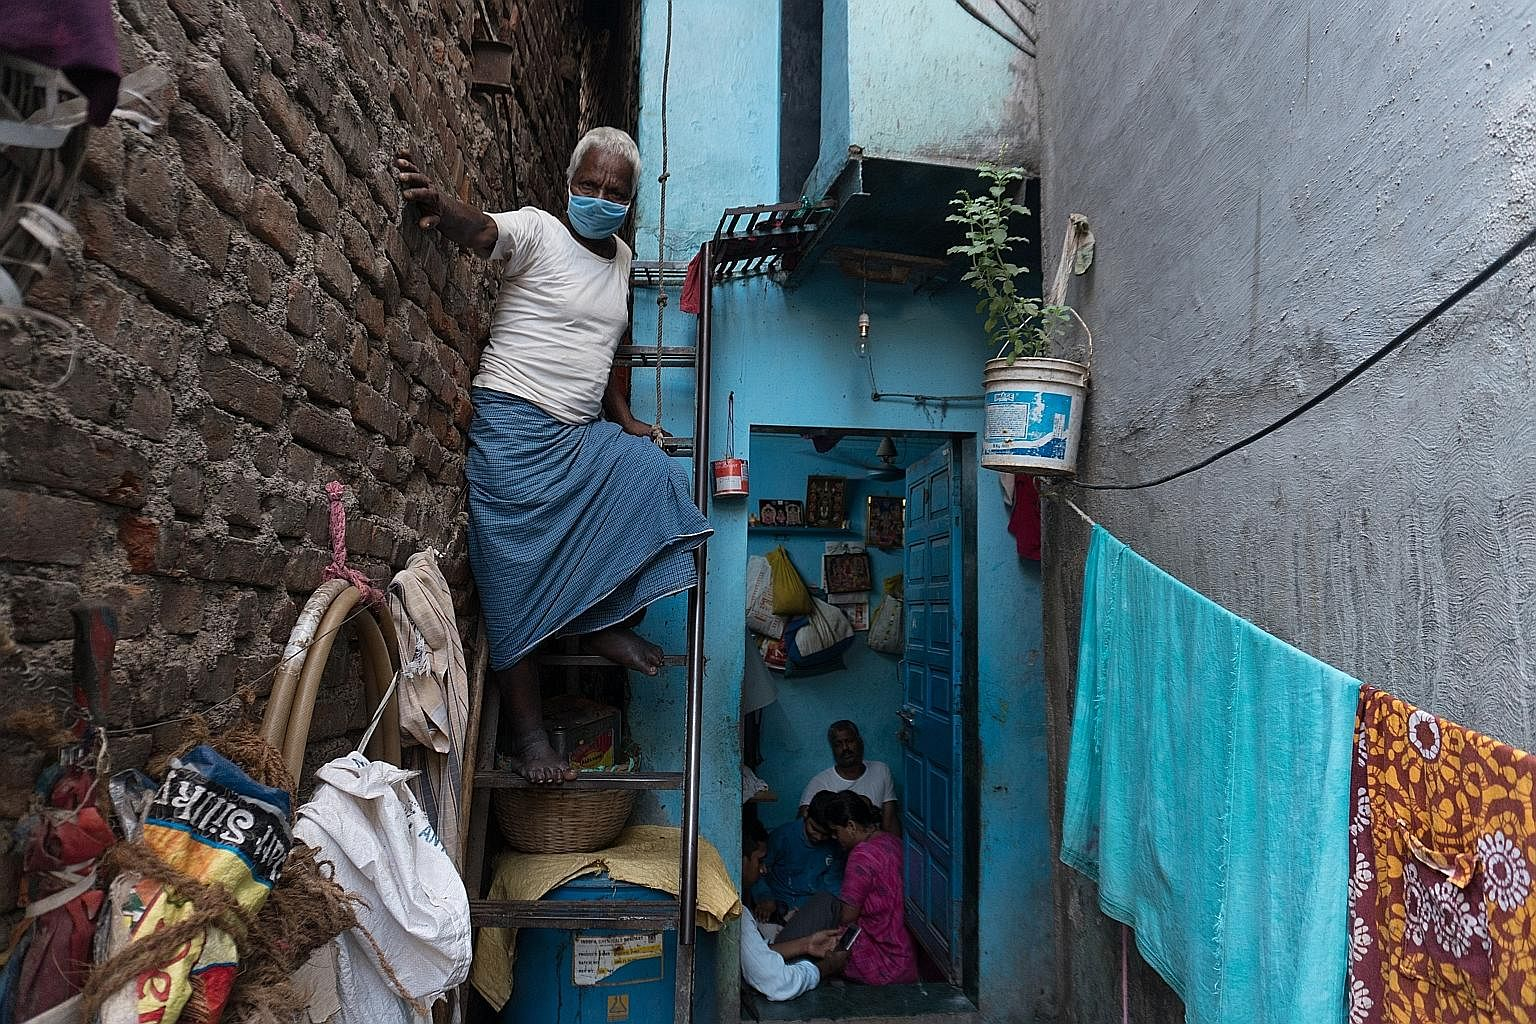 Poor sanitation and shared toilets compound the problem of maintaining hygiene standards.